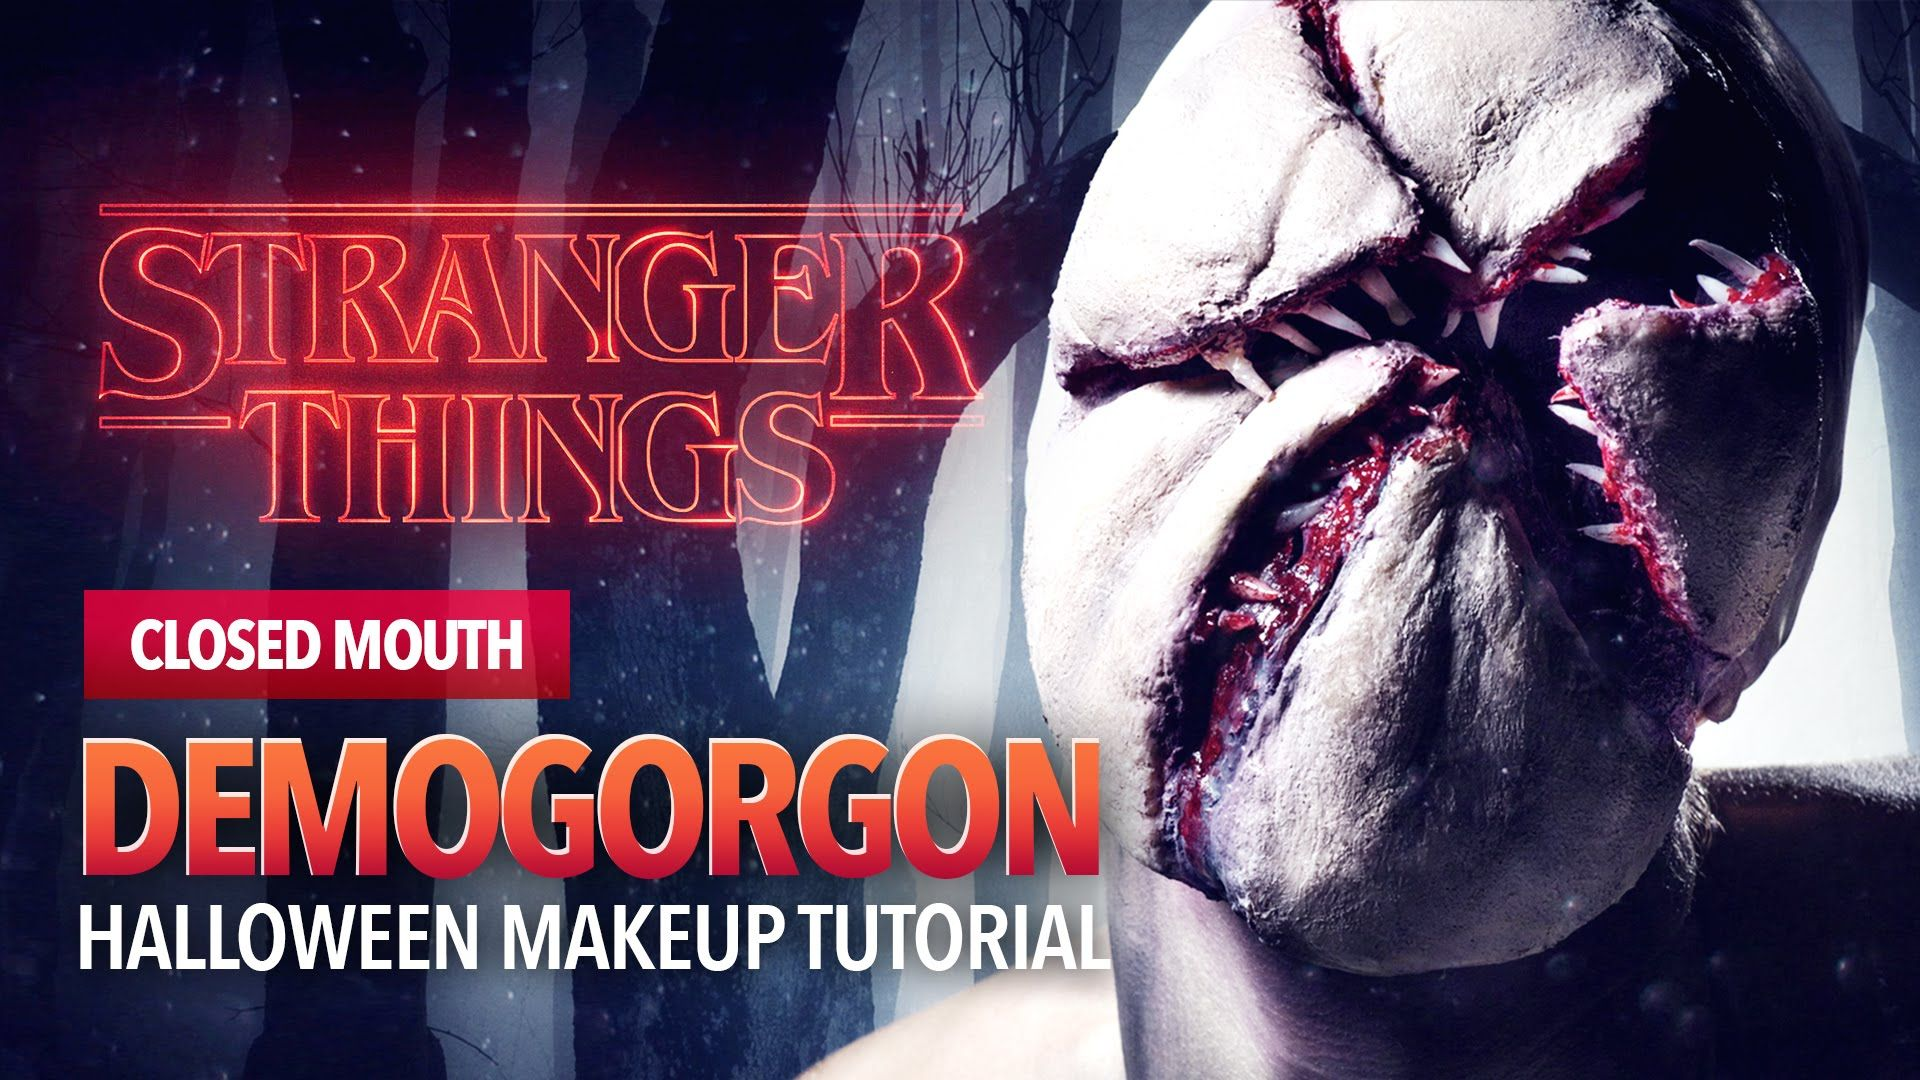 stranger things monster halloween makeup tutorial closed mouth